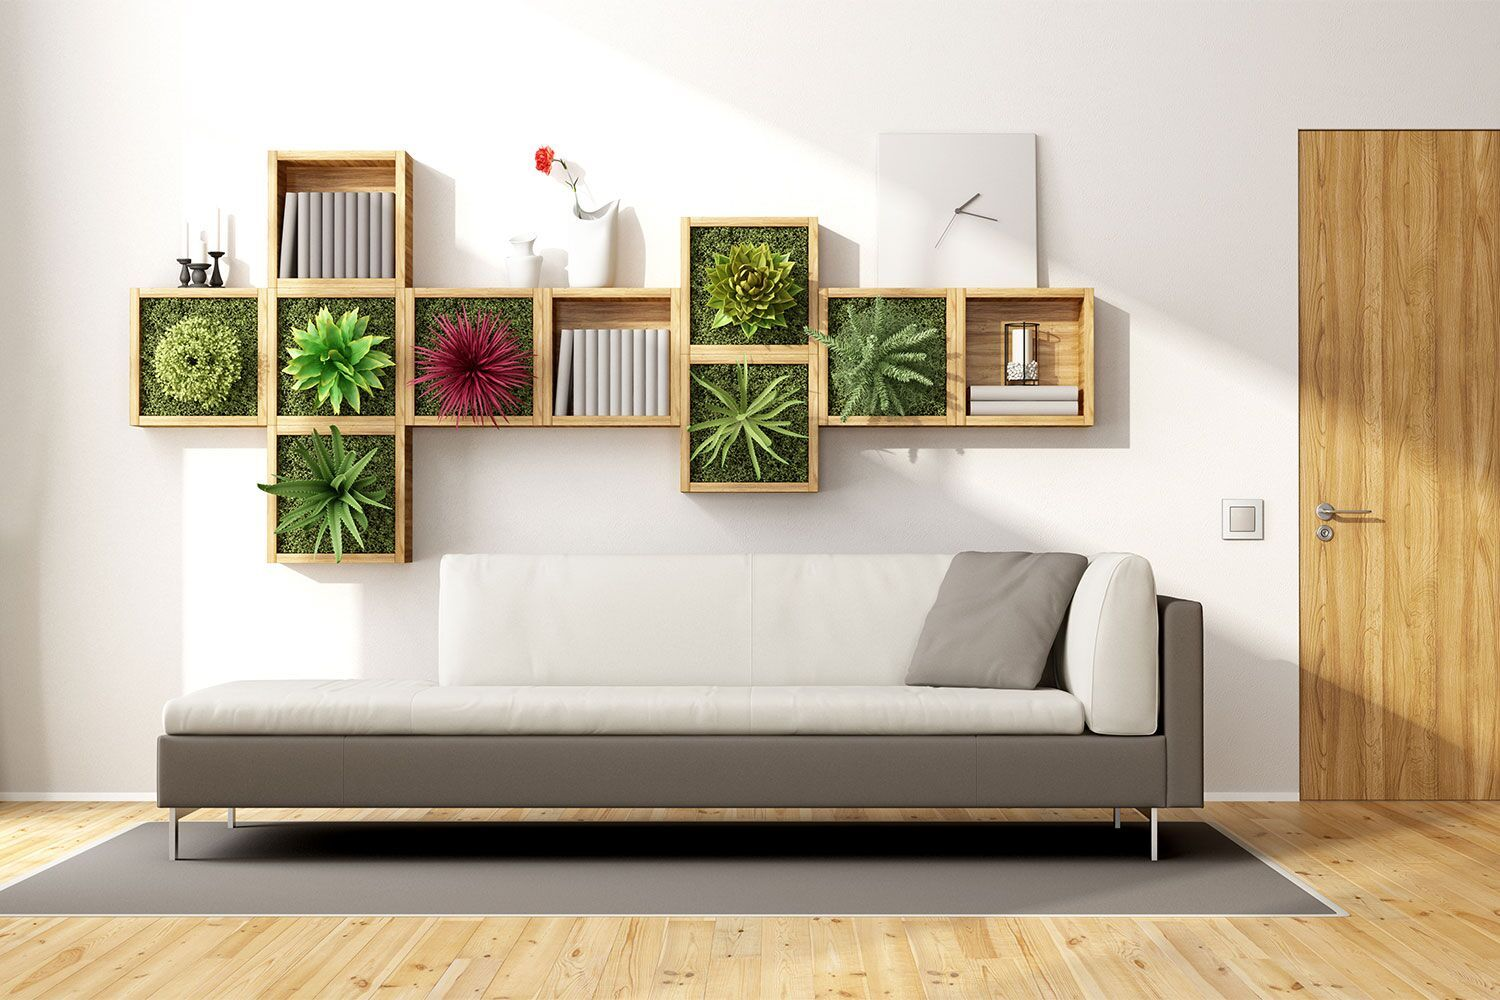 couch with wall planter hanging above